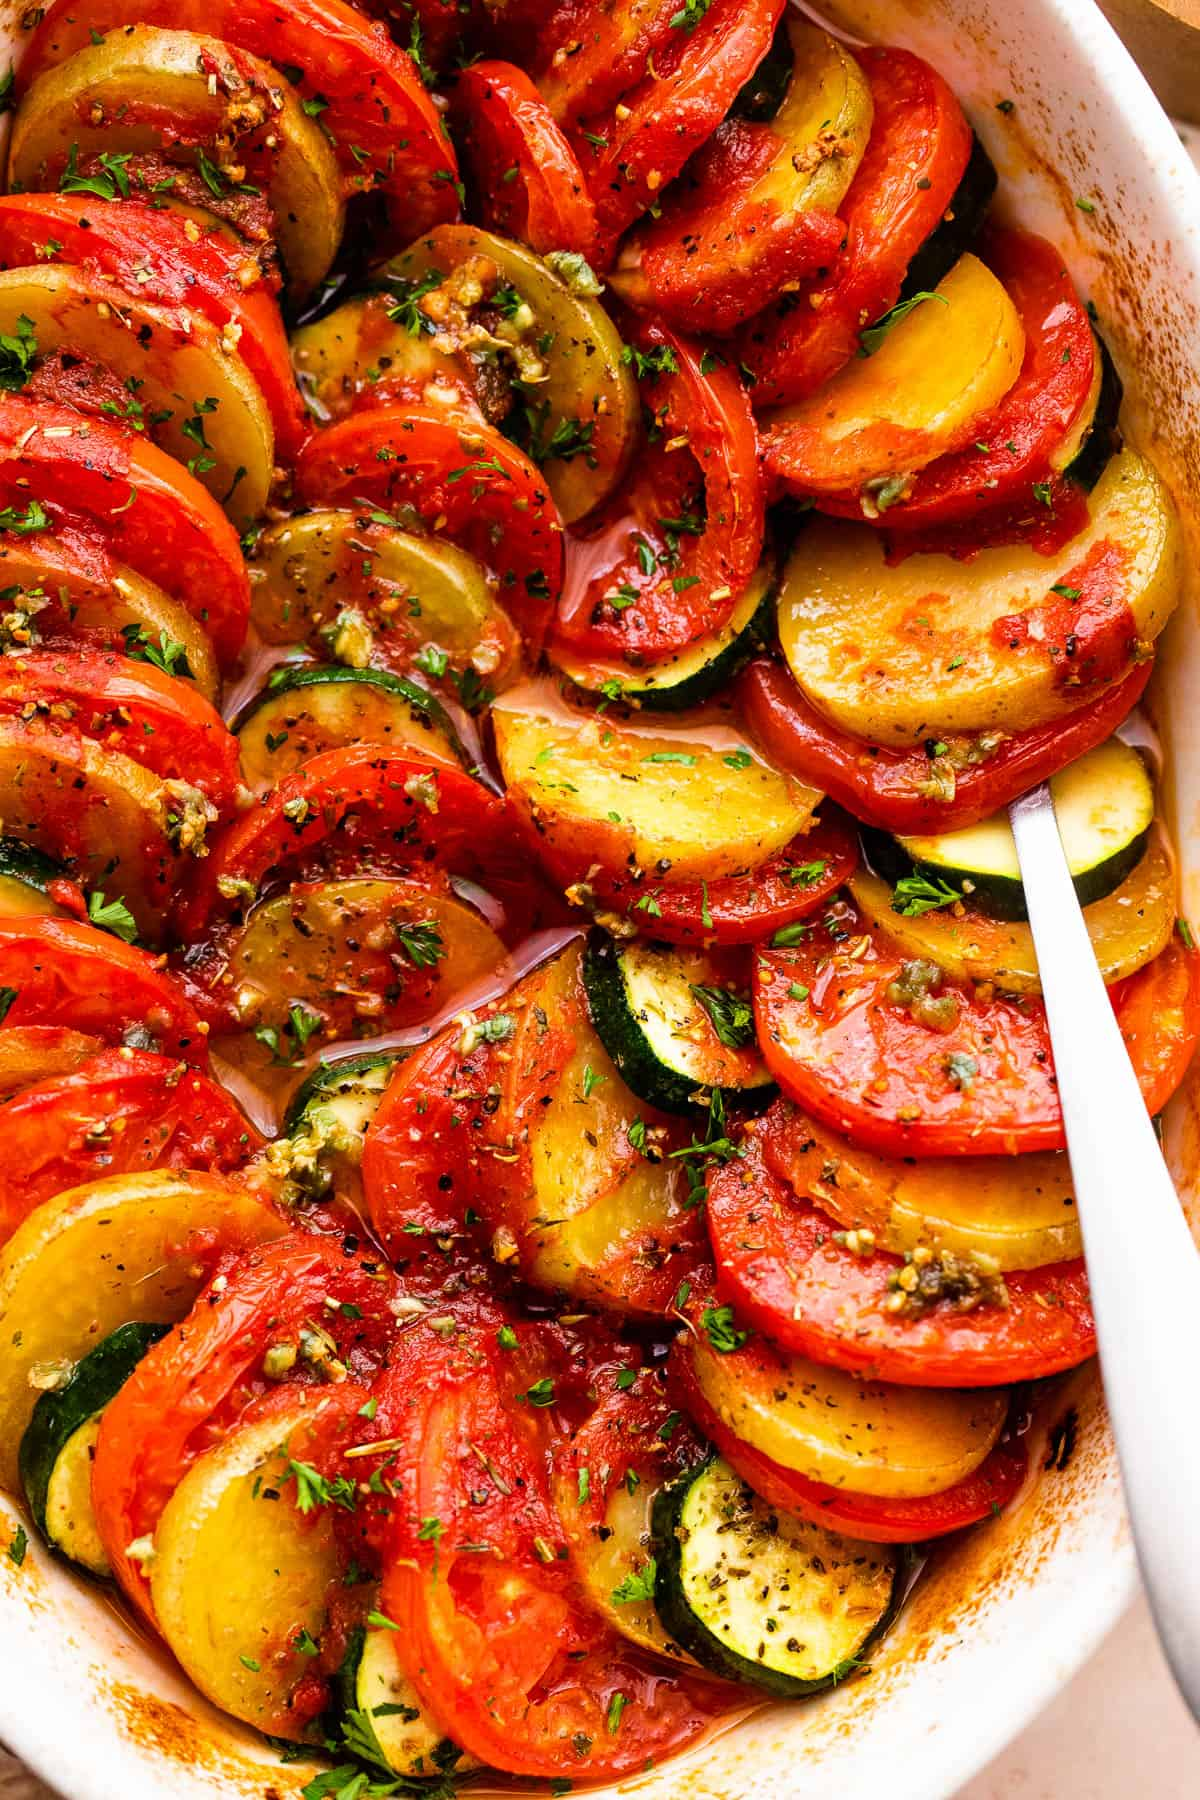 close up shot of zucchini slices, tomato slices, and potato slices arranged accordion style in a baking dish.